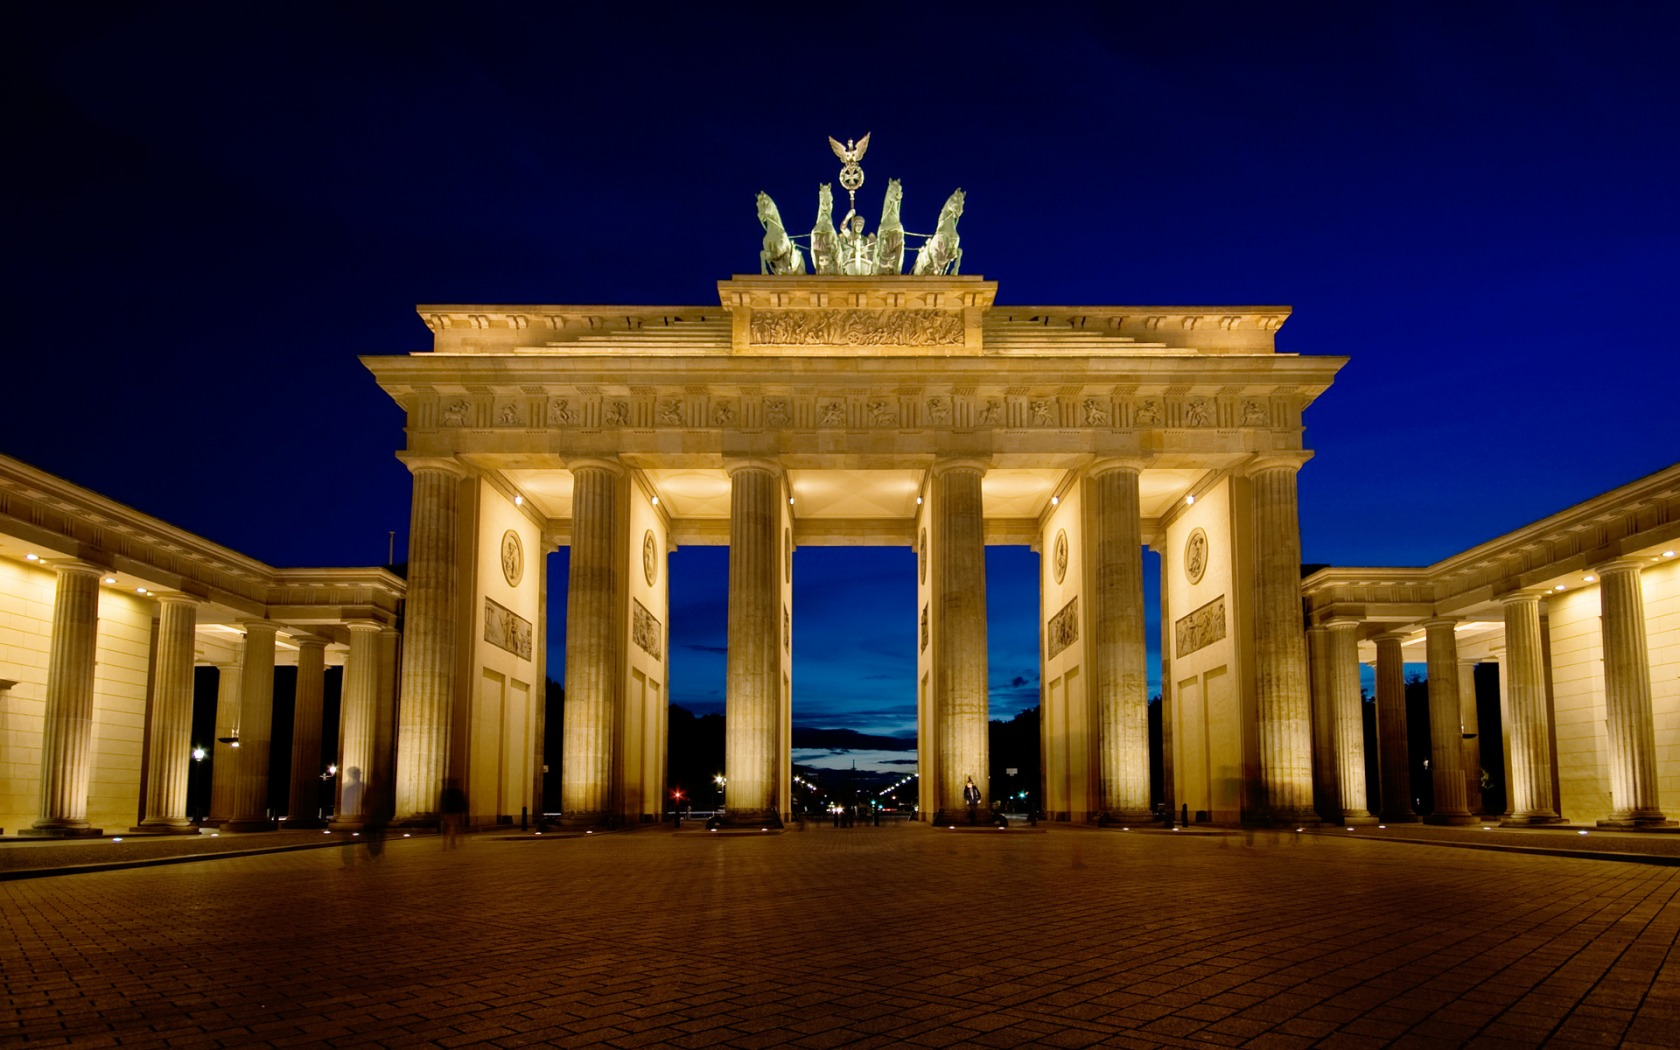 Brandenburg Gate Photo At Night